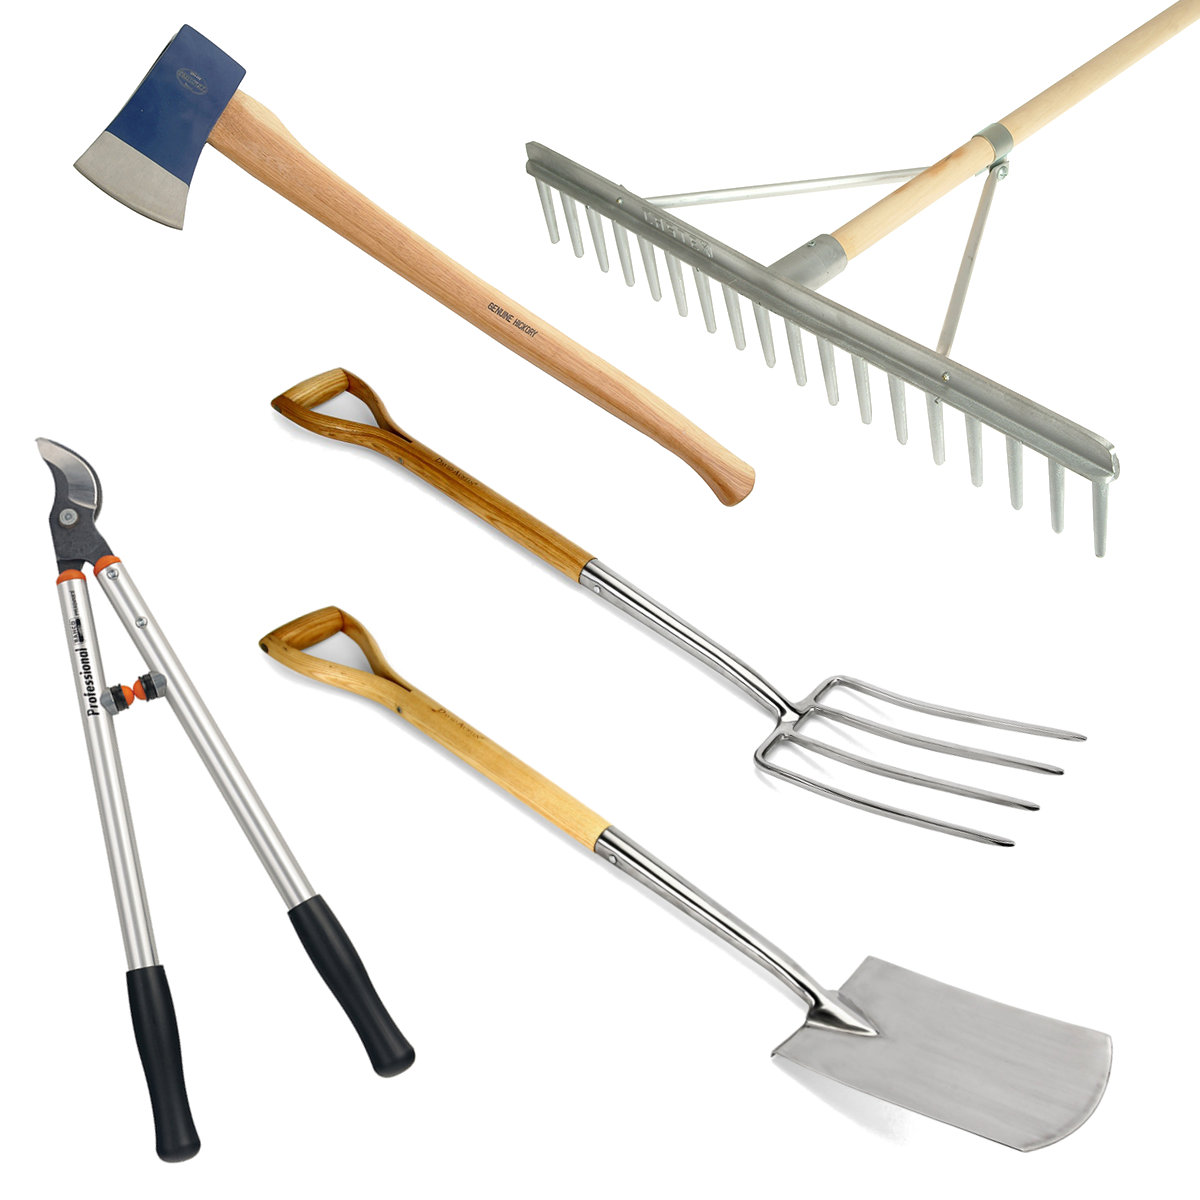 Garden hand tools wellers hire for Gardening tools to have